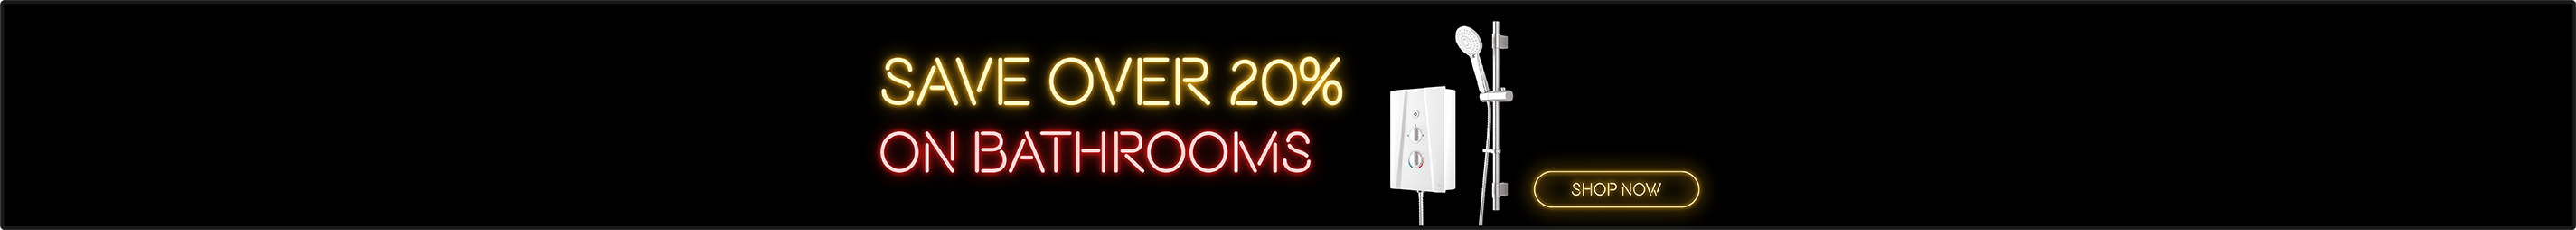 Save Over 20% on Bathrooms